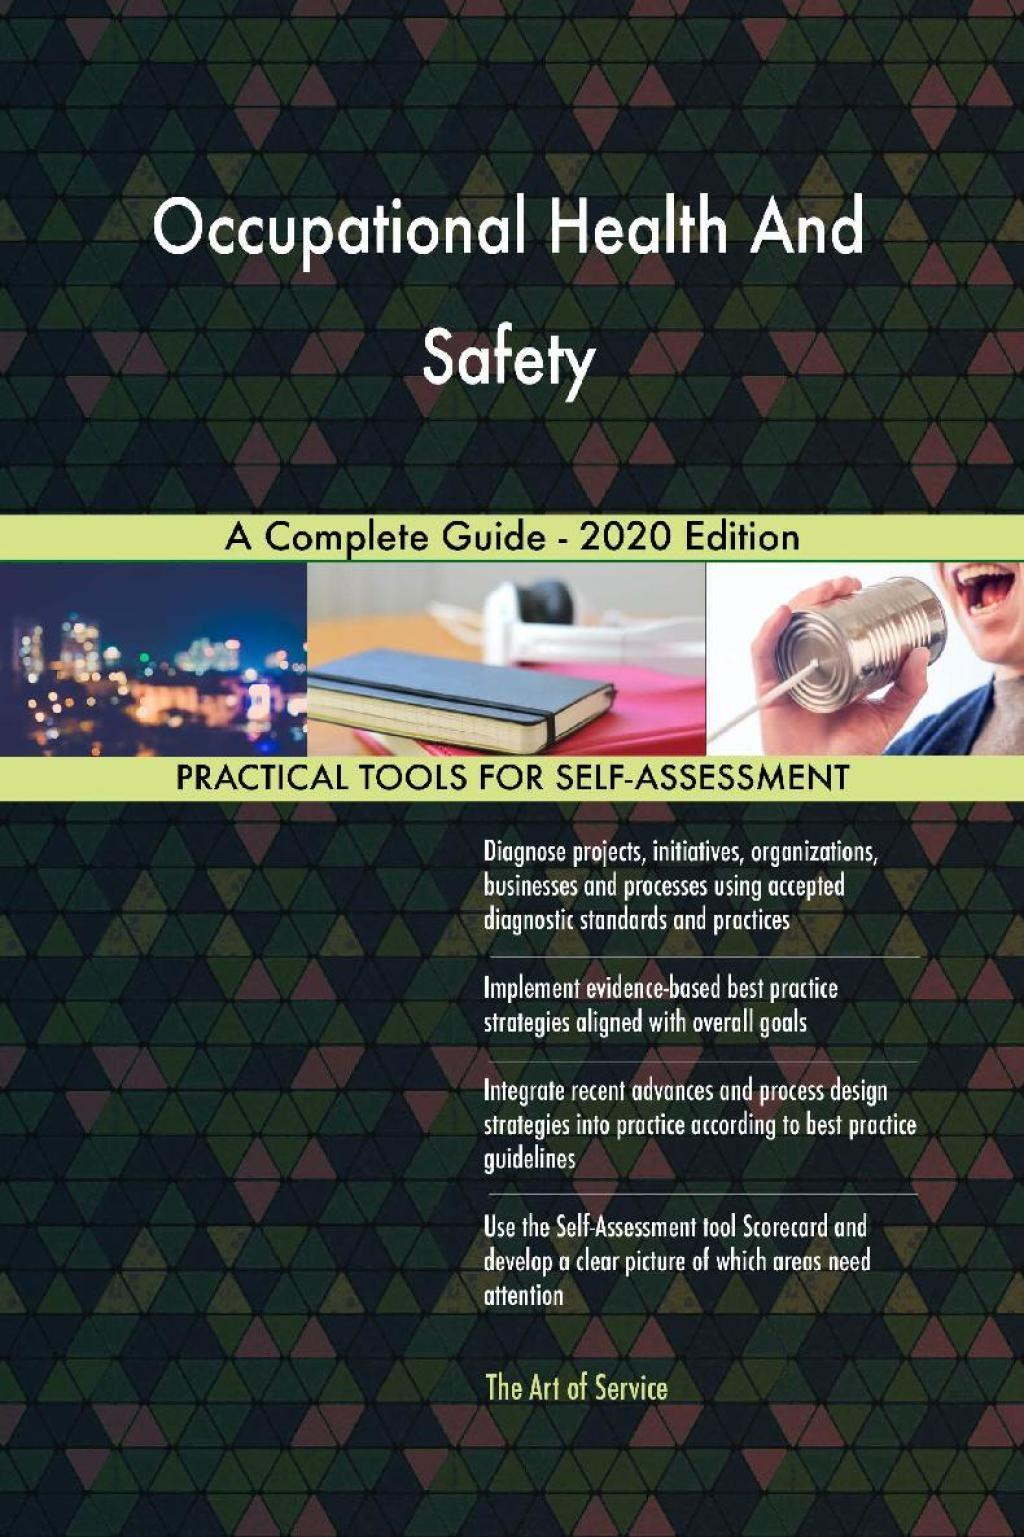 Occupational Health And Safety A Complete Guide 2020 Edition